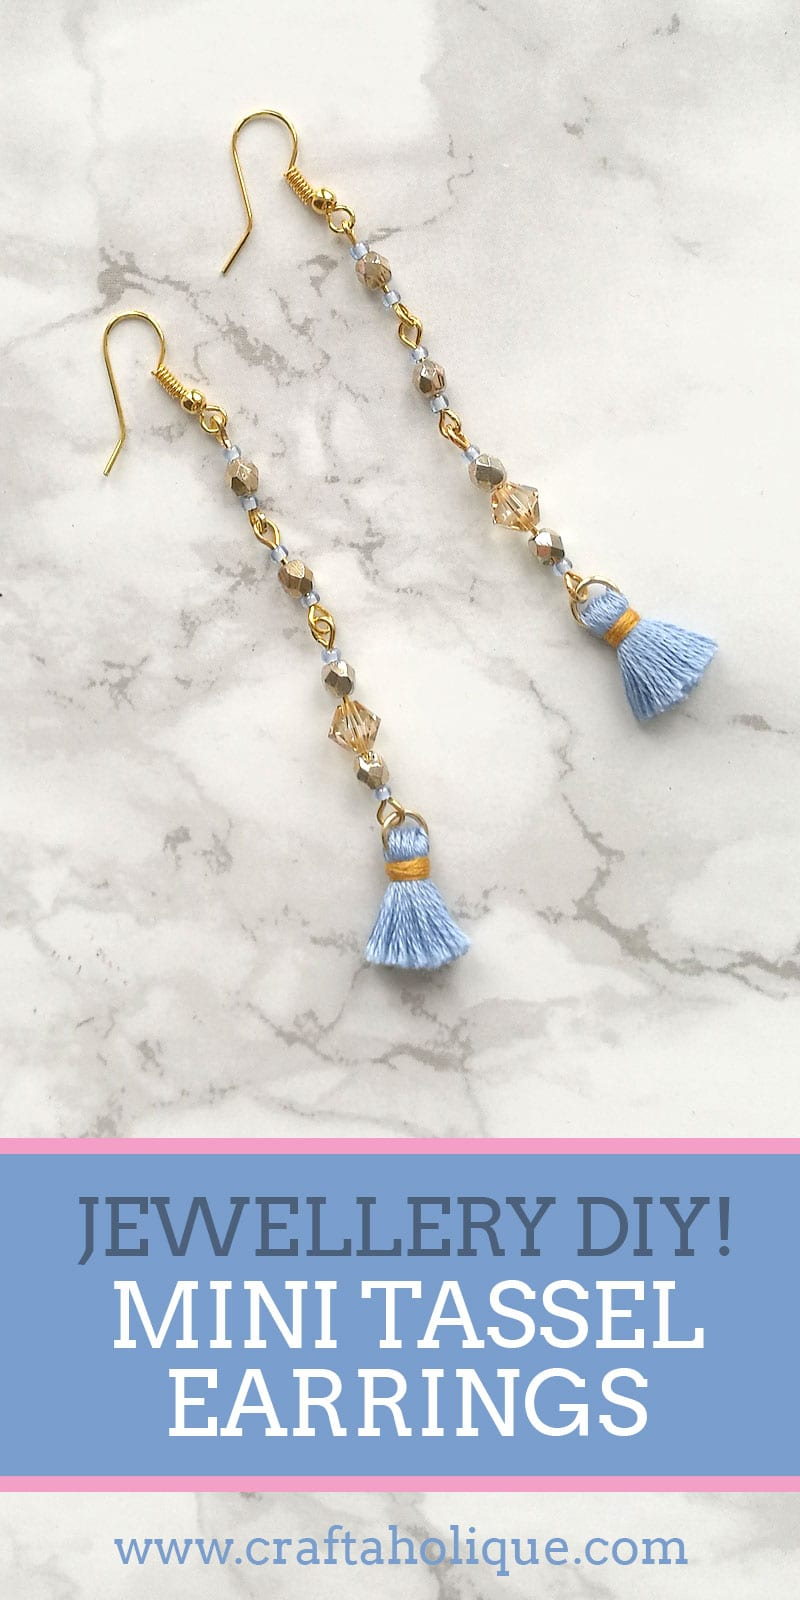 How to make long dangle earrings with mini tassels - jewellery making tutorial from Craftaholique